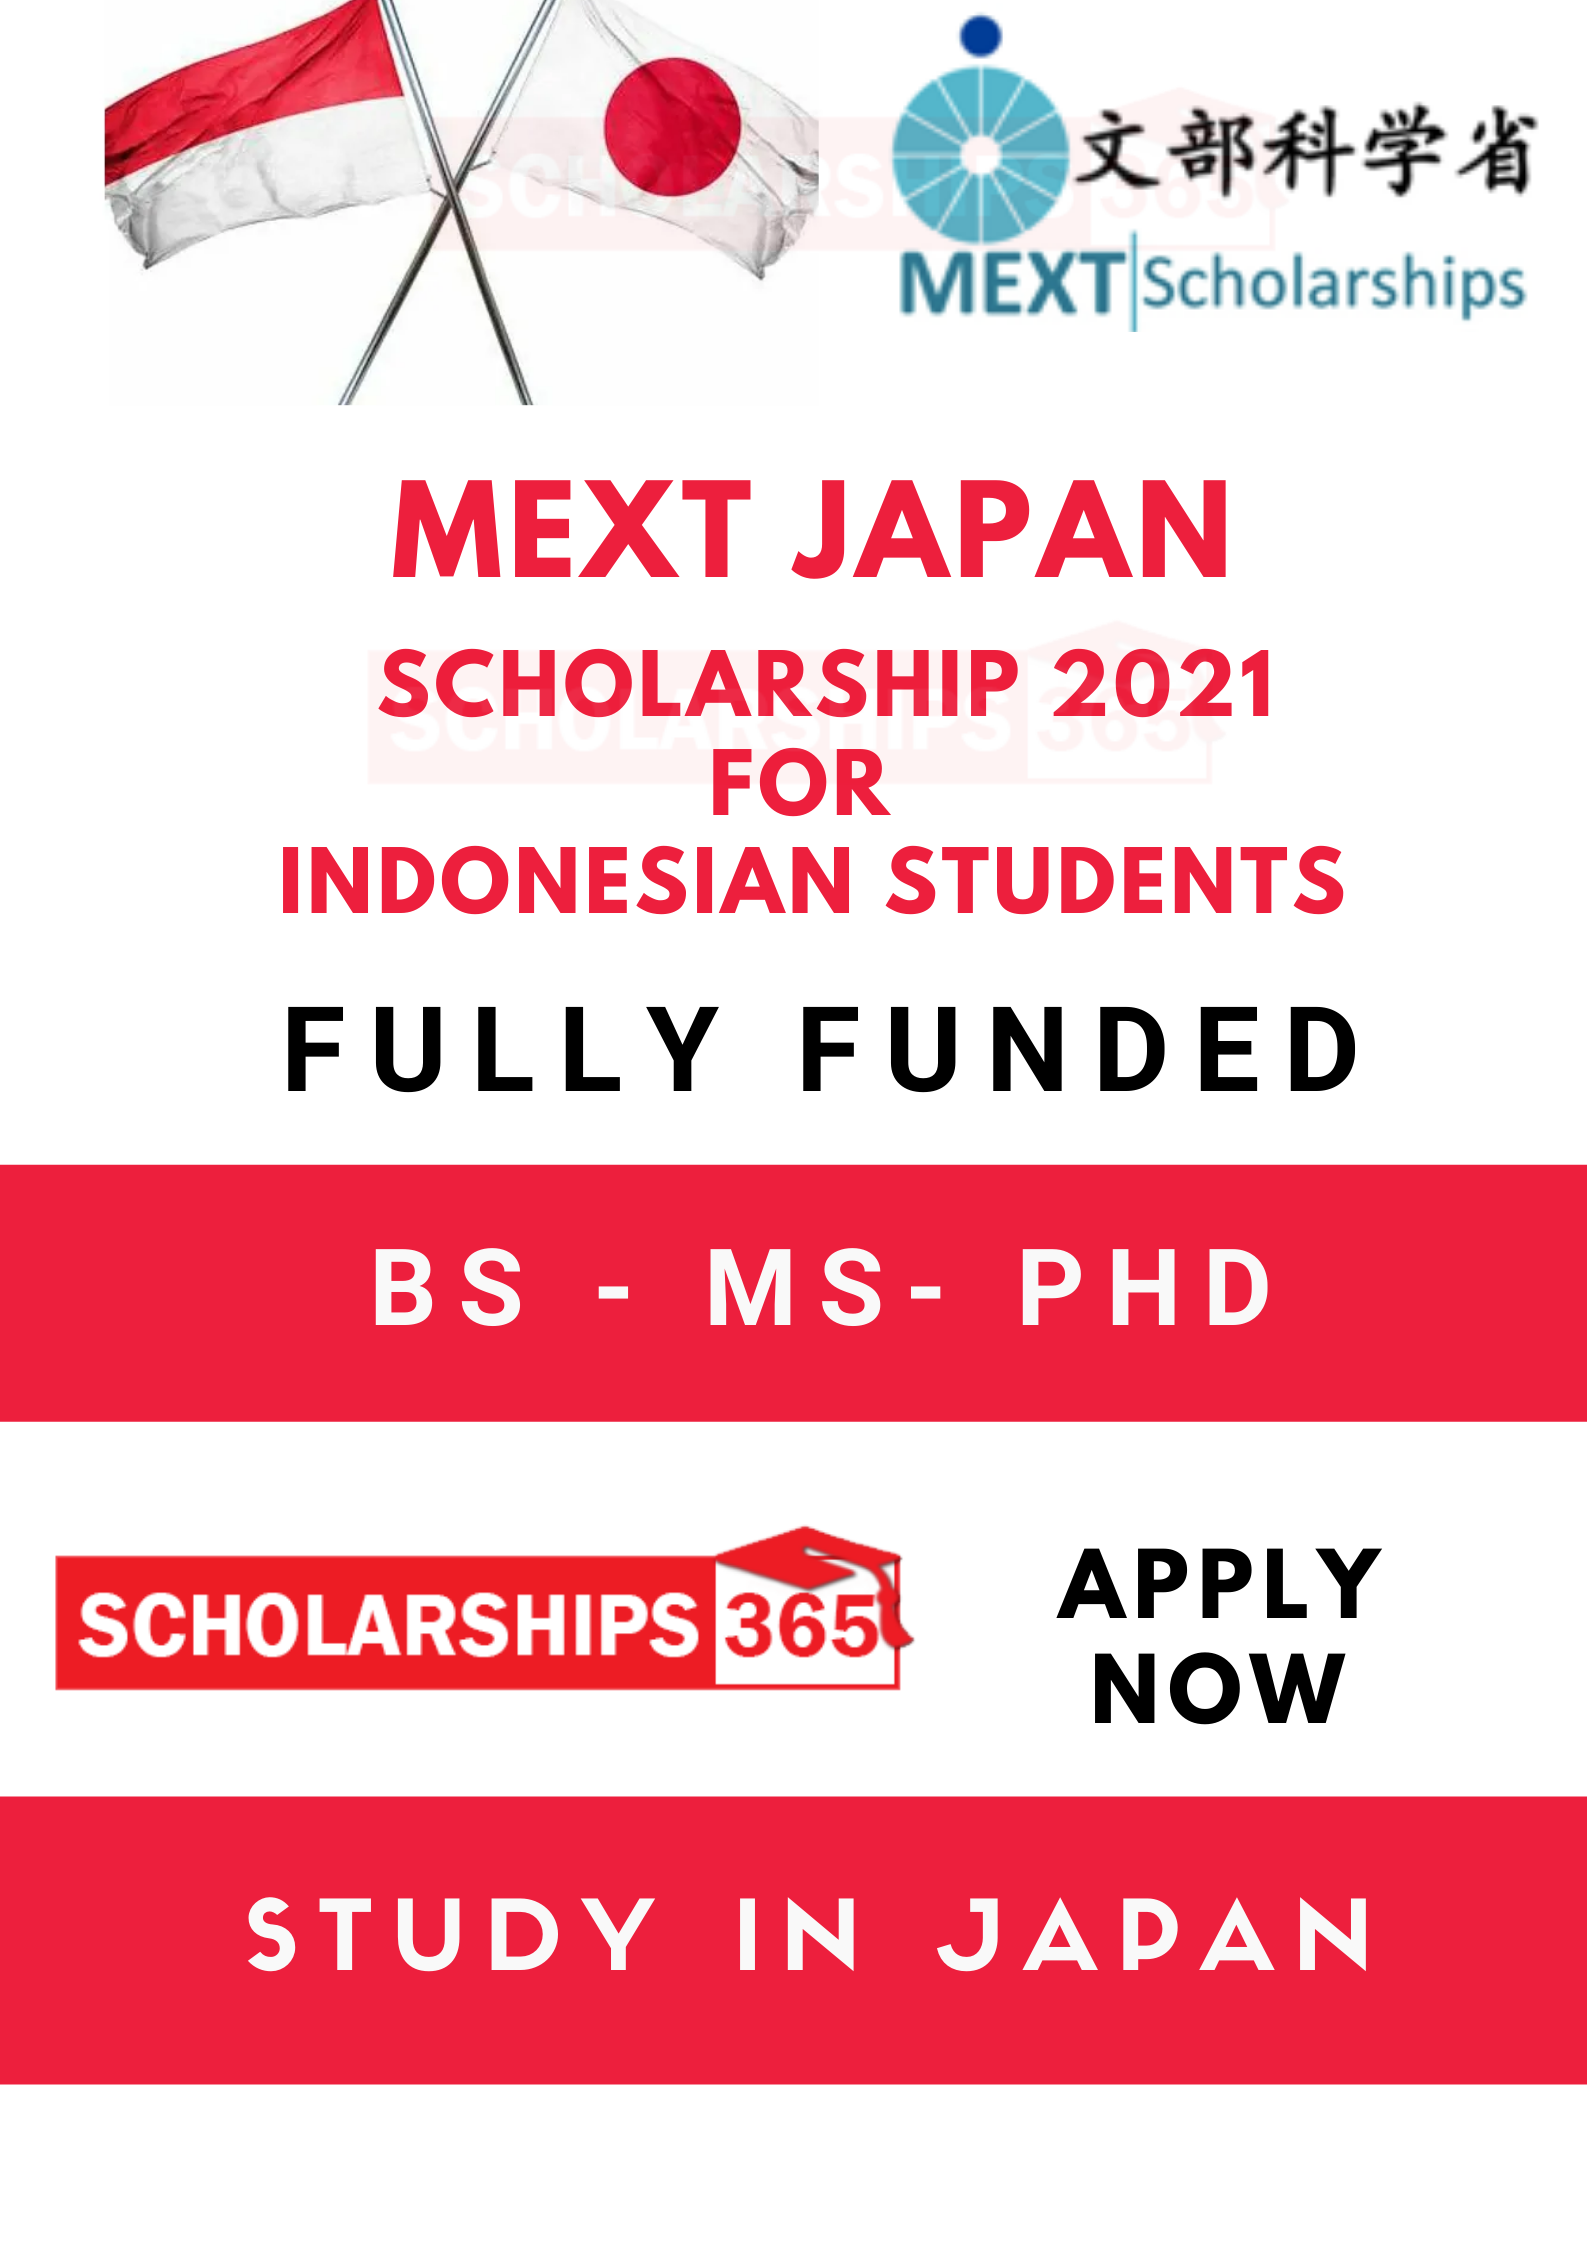 MEXT Scholarship 2021 for Indonesian Students - Fully Funded